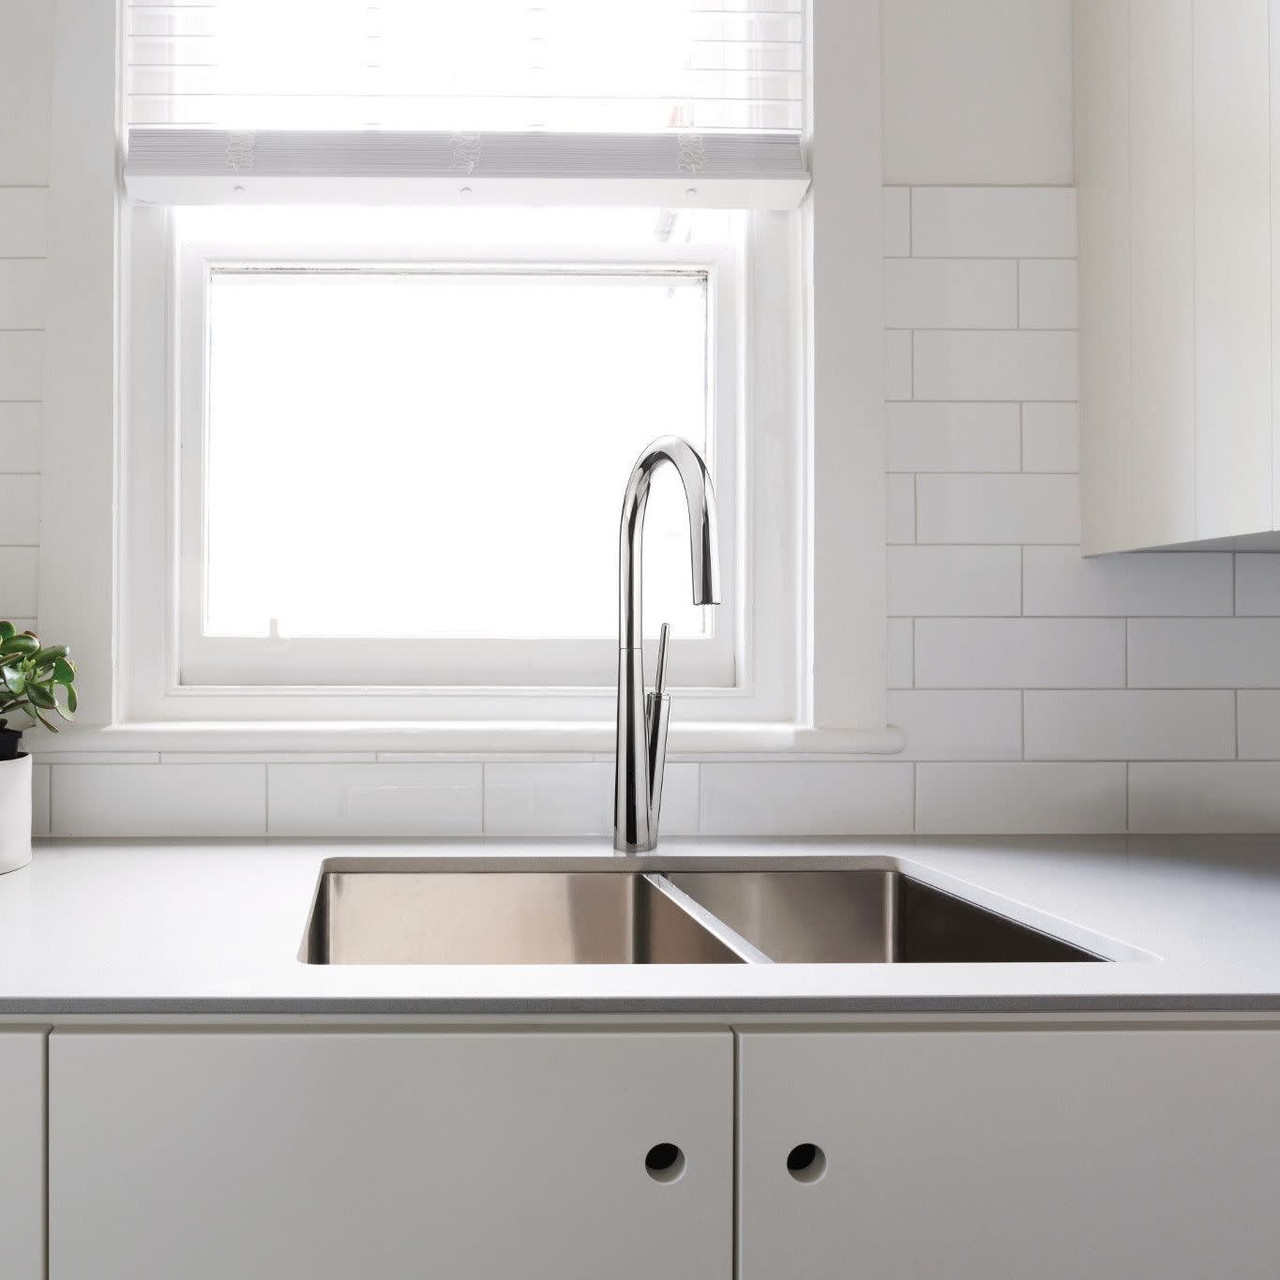 riobel solstice kitchen faucet with spray chrome